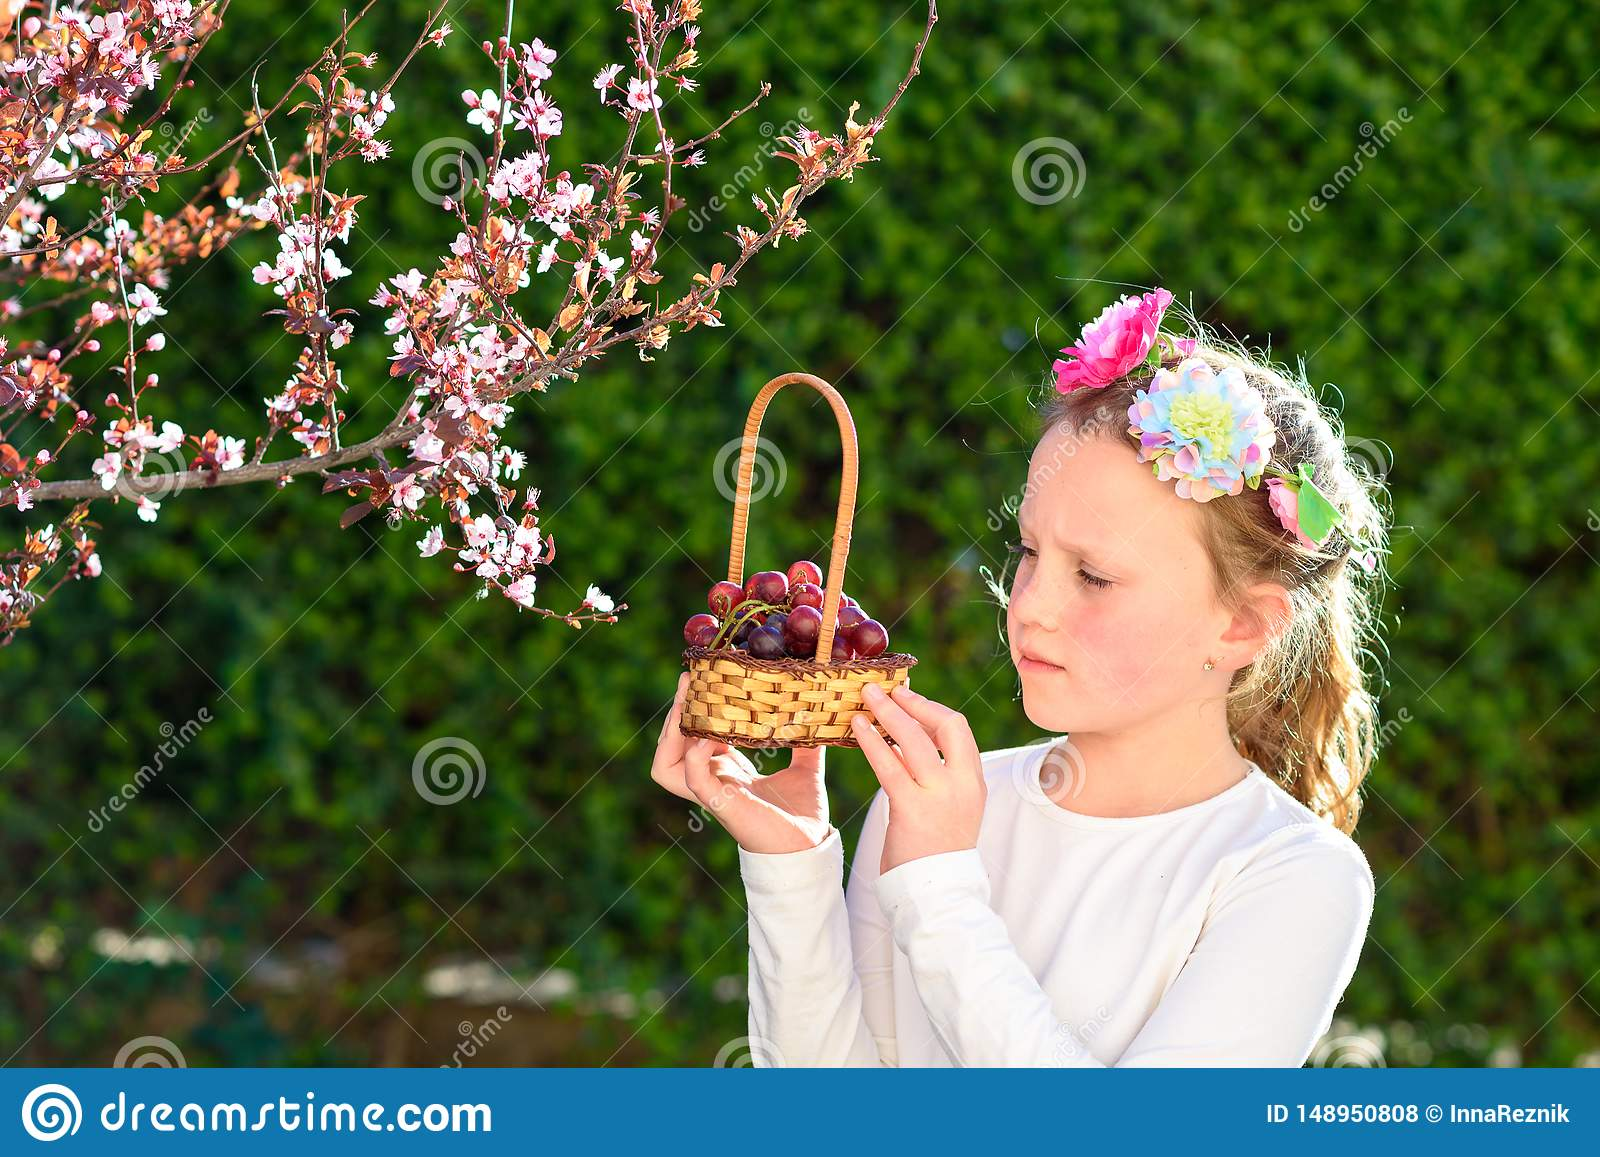 Cute little girl posing with fresh fruit in the sunny garden. Little girl with basket of grapes.